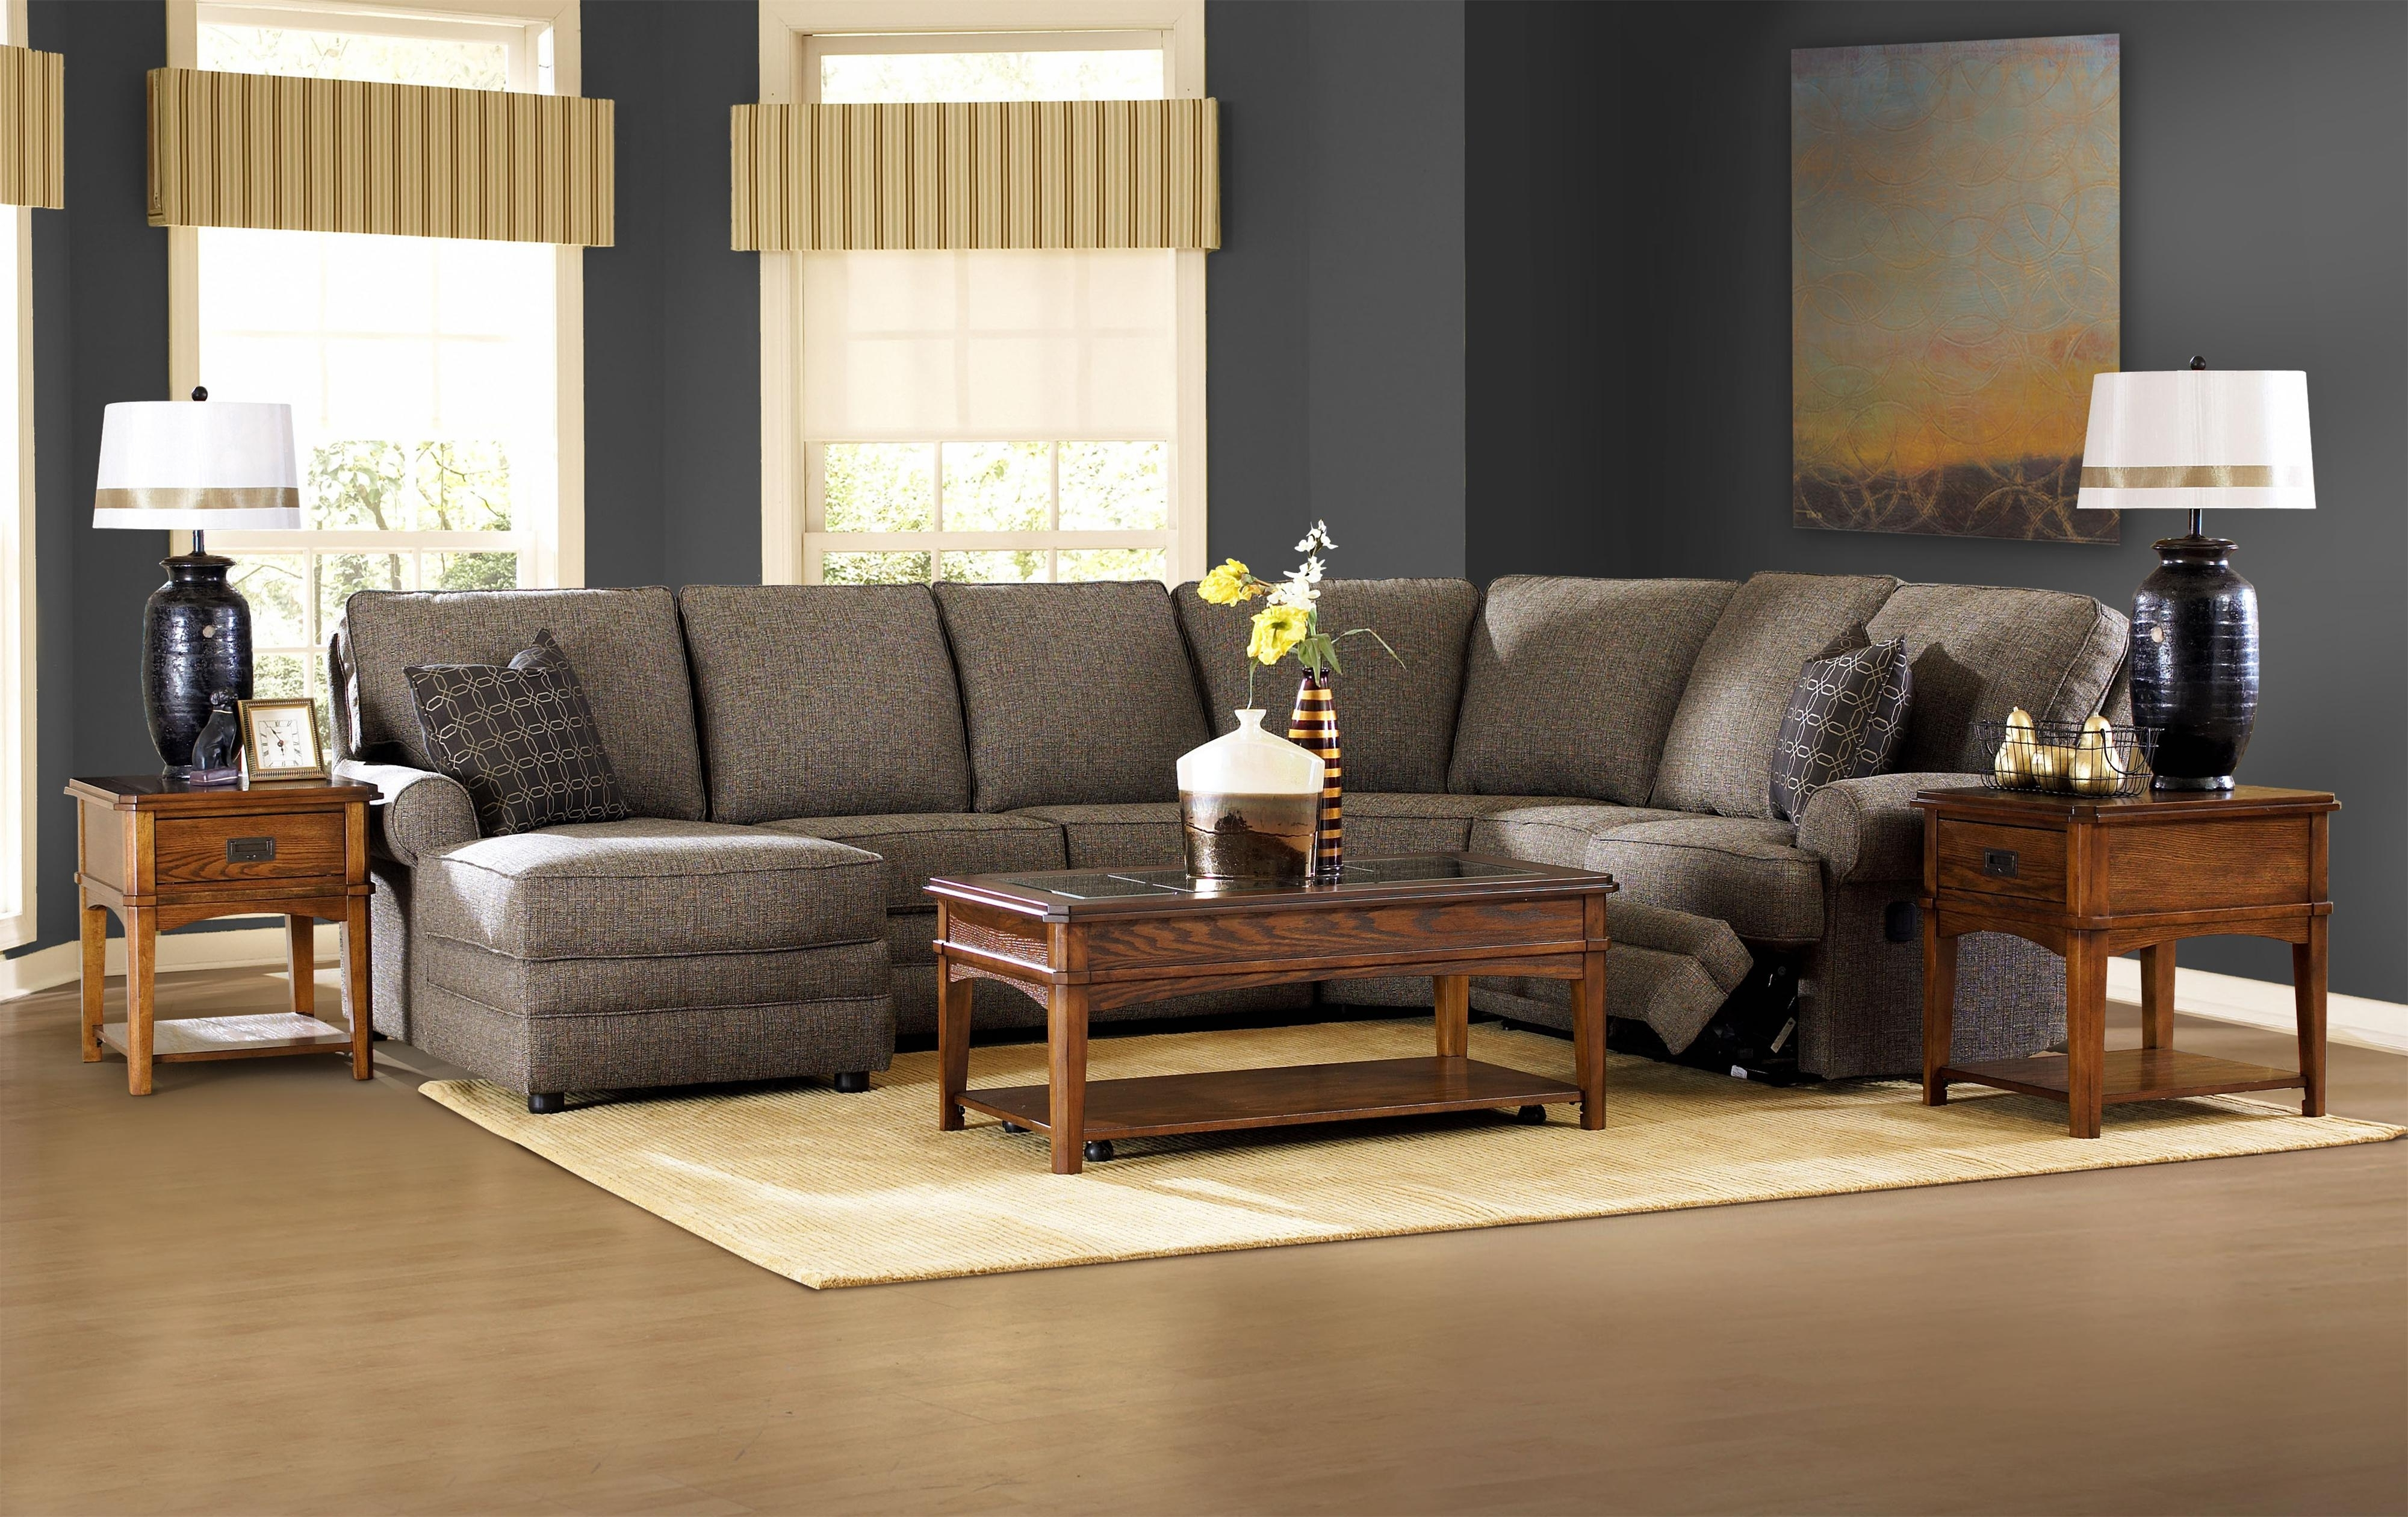 Famous Couches With Chaise And Recliner Regarding An Overview Of Sectional Sofas With Recliner – Elites Home Decor (View 6 of 15)